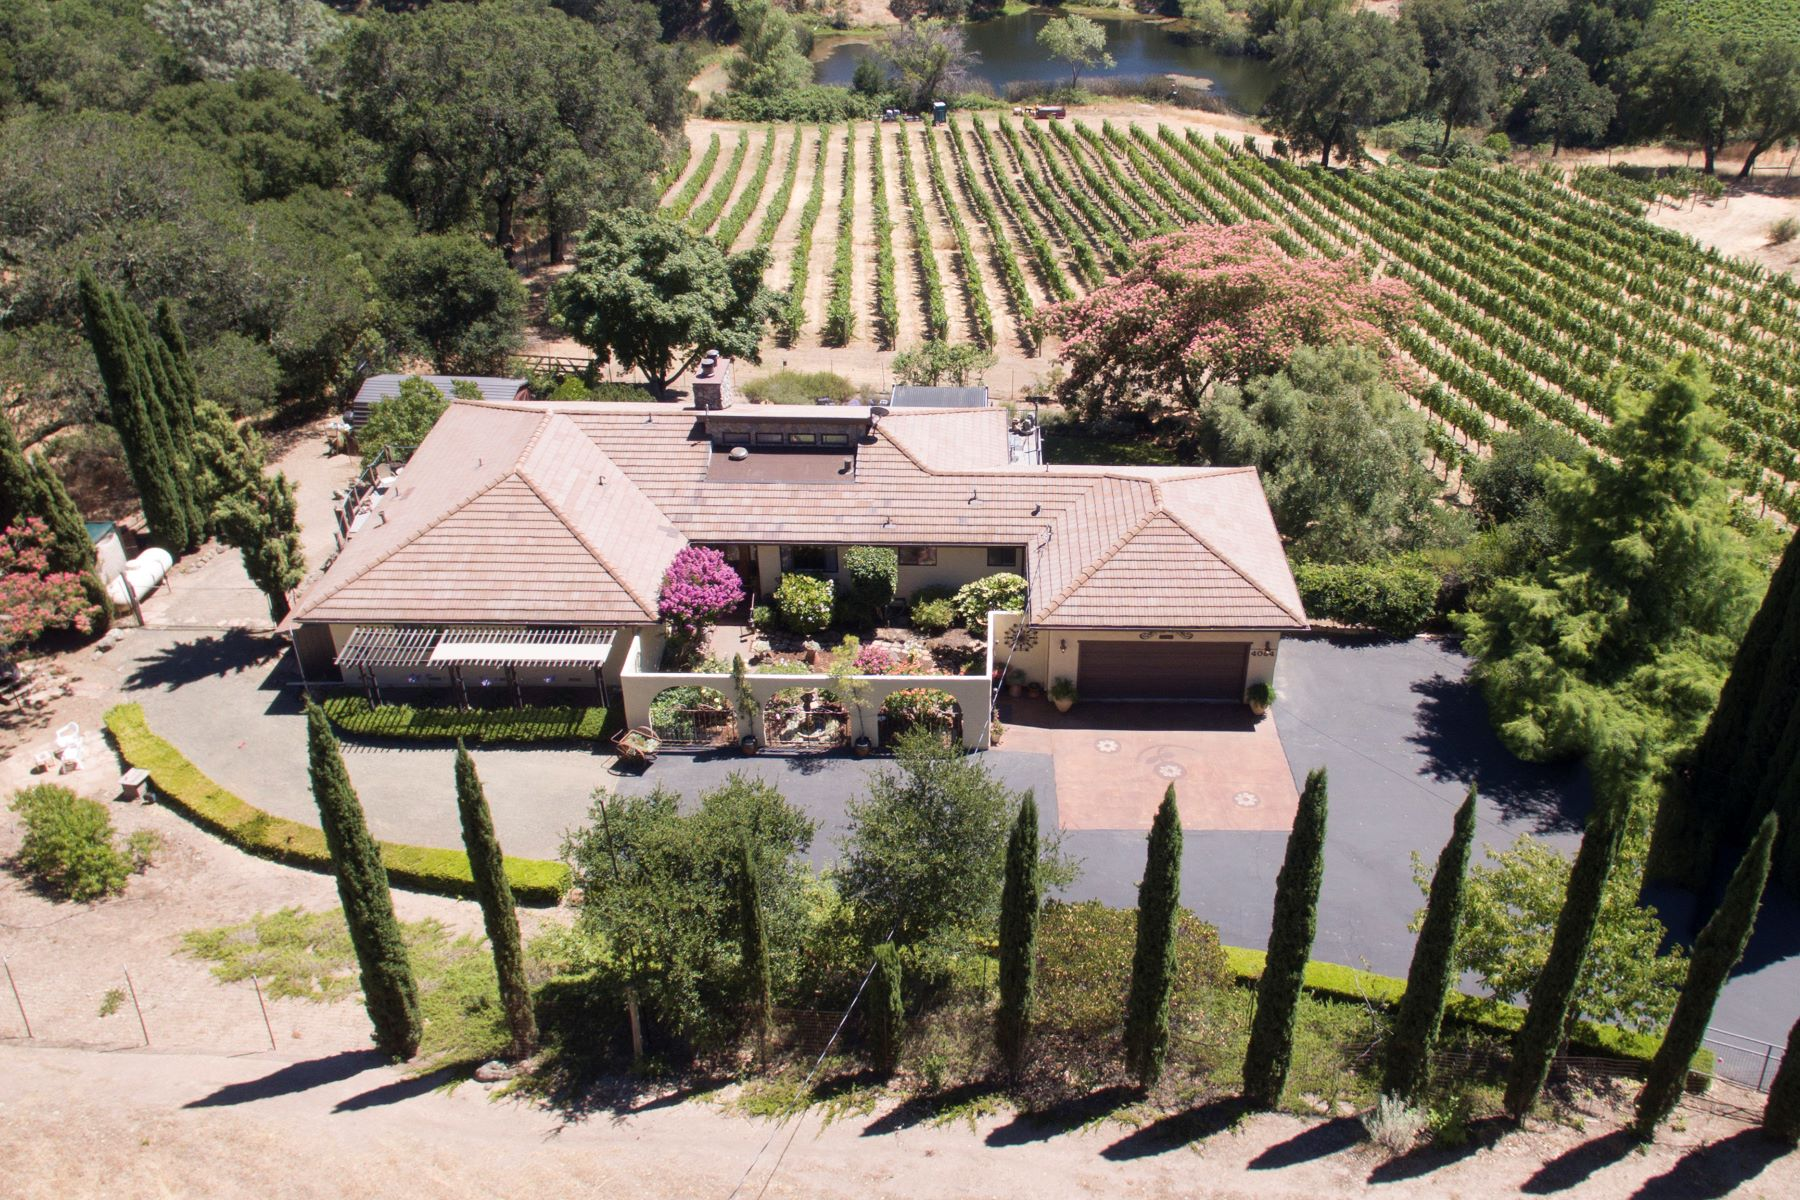 Single Family Home for Sale at A Serene Retreat with Valley Views 4084 Atlas Peak Road Napa, California, 94558 United States